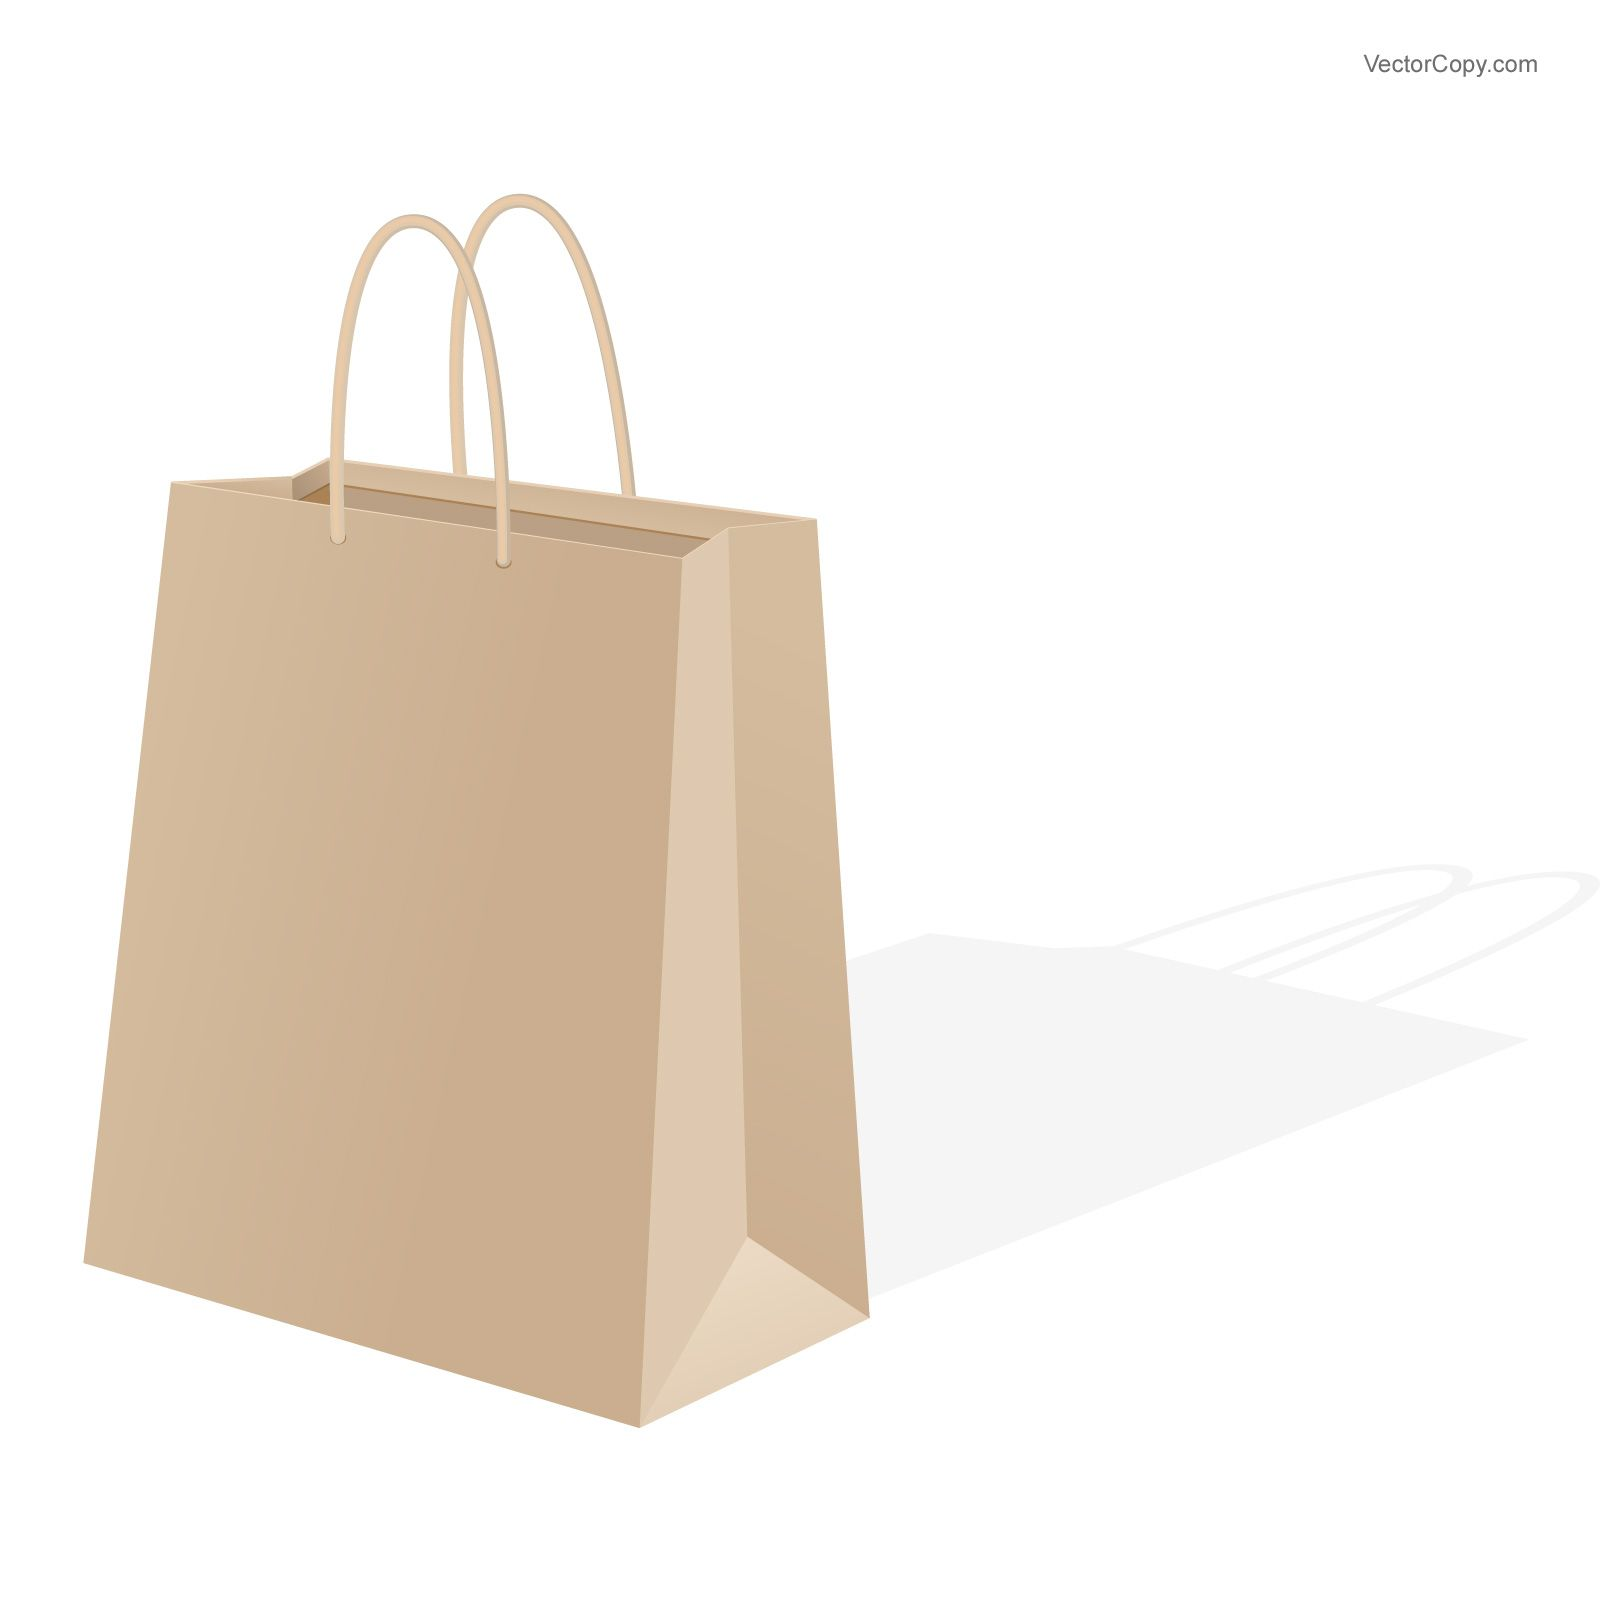 Paper shopping bag, download free vector images.